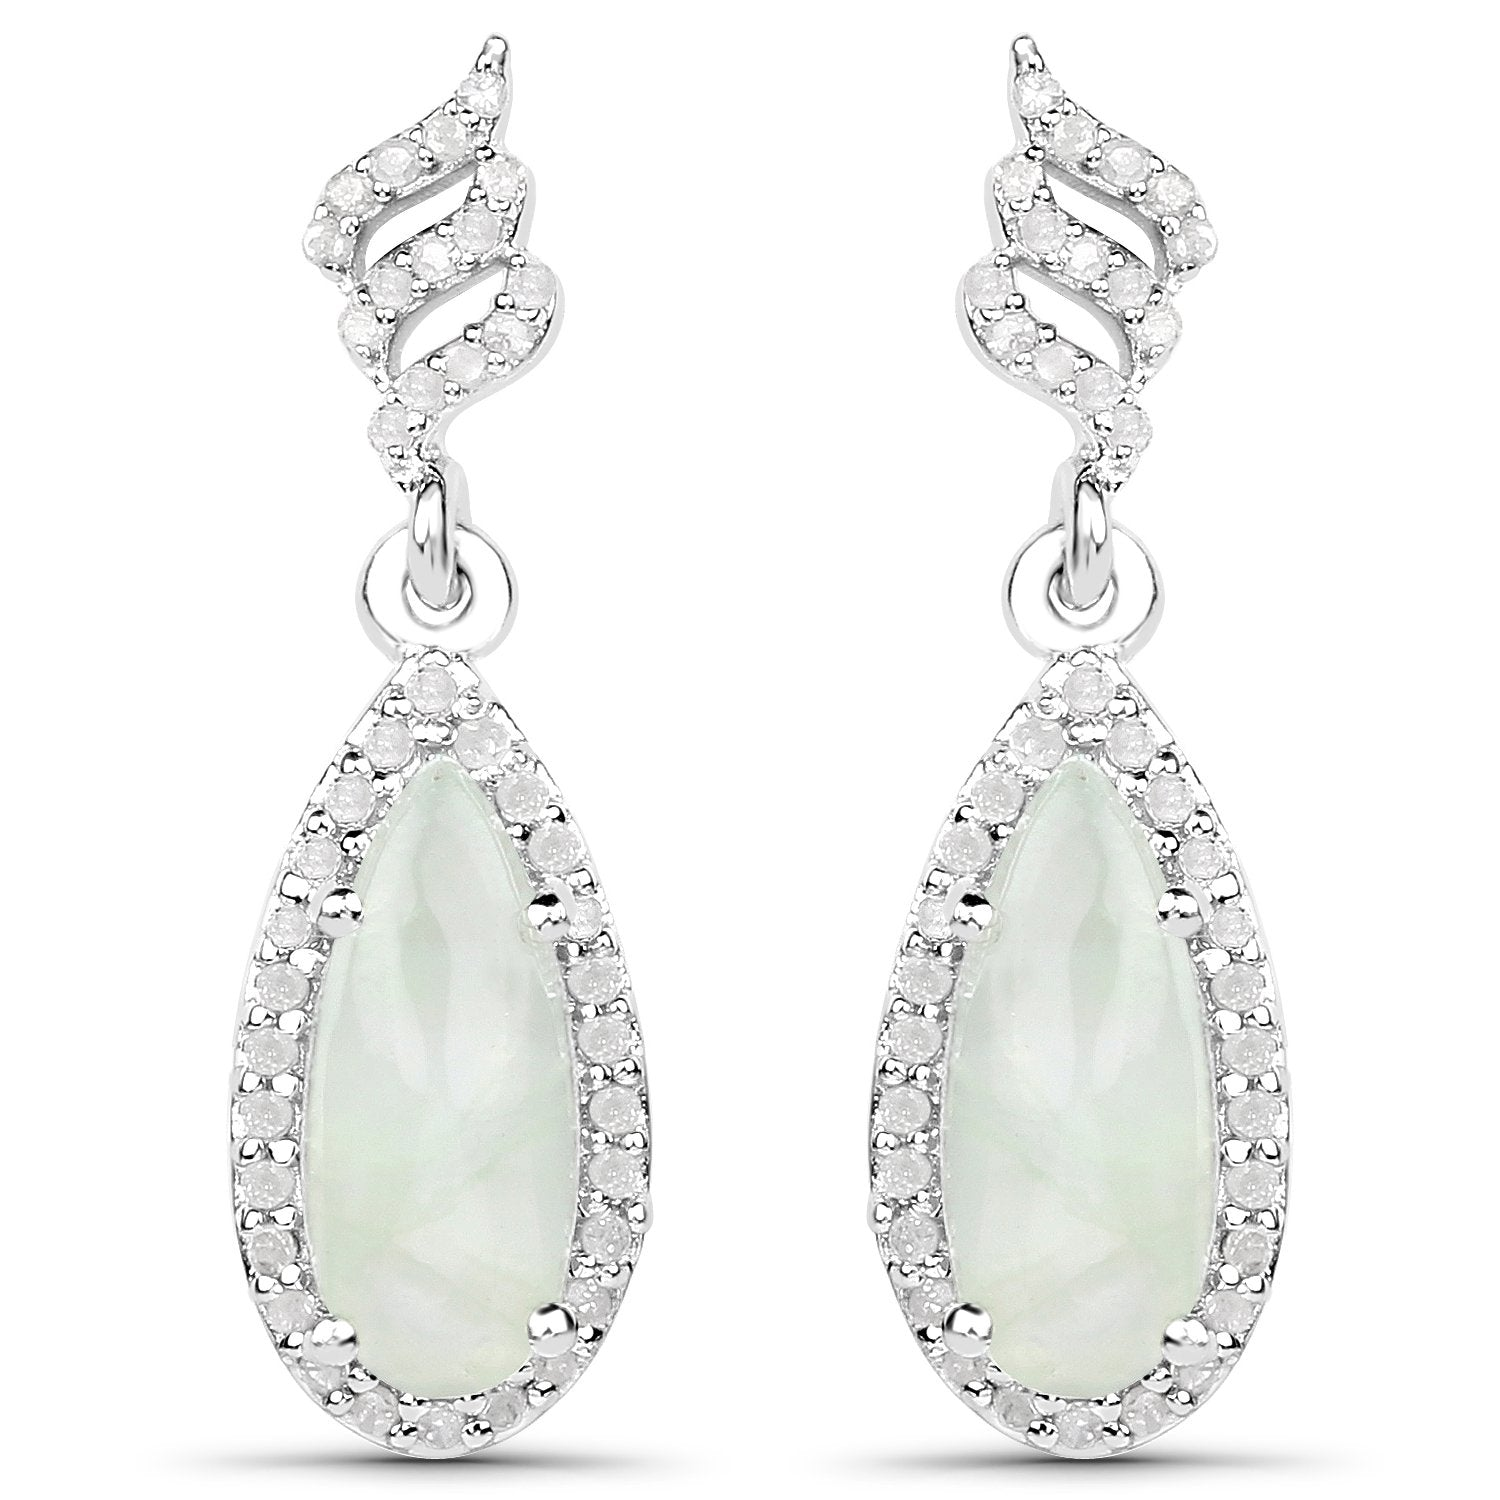 LoveHuang 2.93 Carats Genuine Prehnite and White Topaz Dangle Earrings Solid .925 Sterling Silver With Rhodium Plating